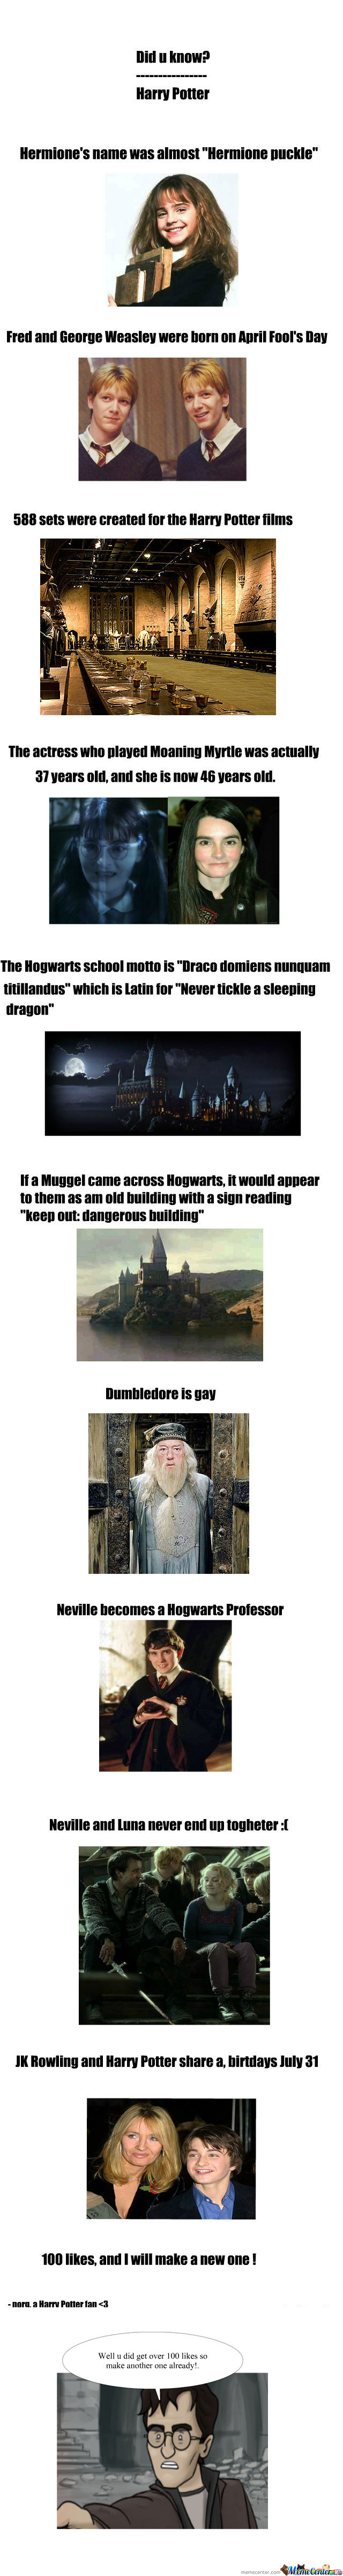 [RMX] Did U Know? Harry Potter